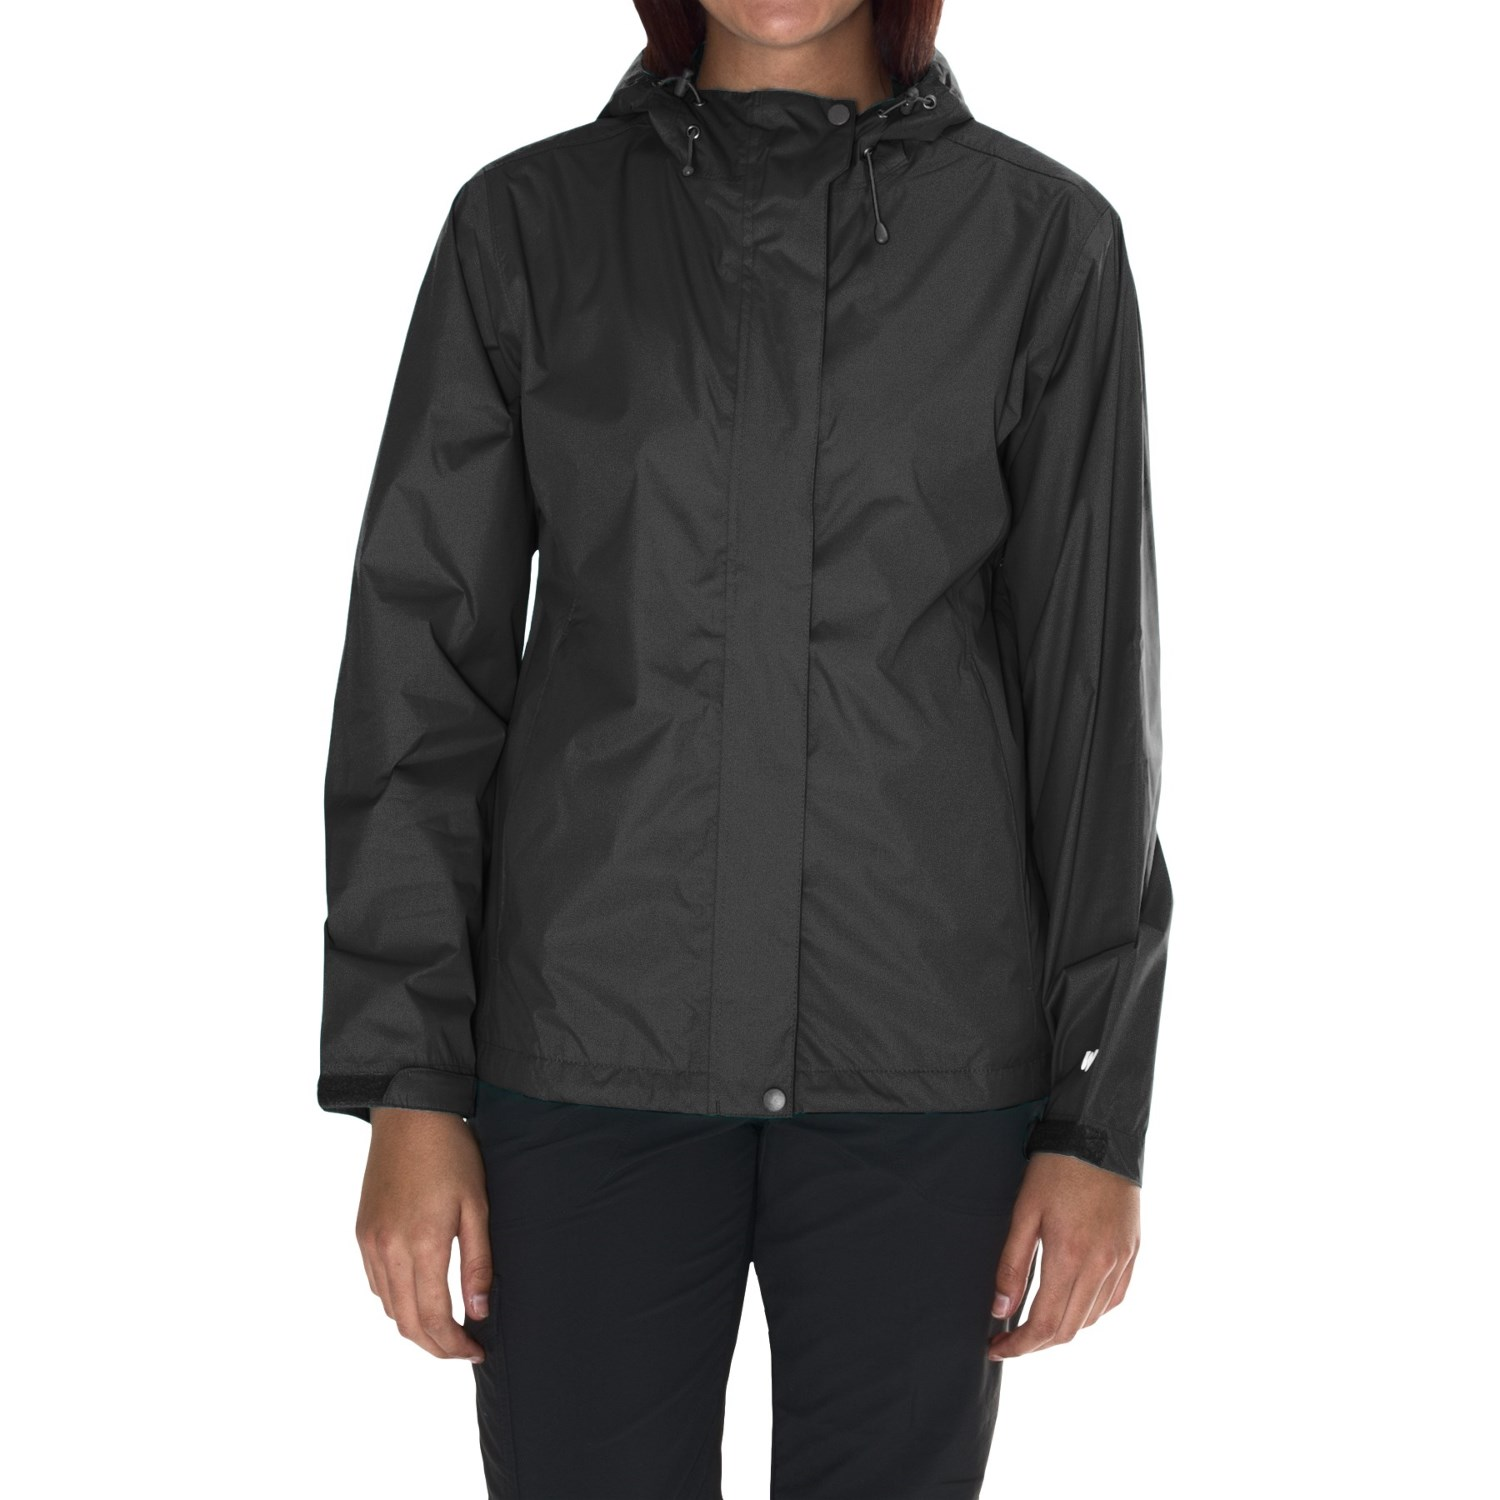 Customer Reviews of White Sierra Cloudburst Trabagon Rain Jacket ...